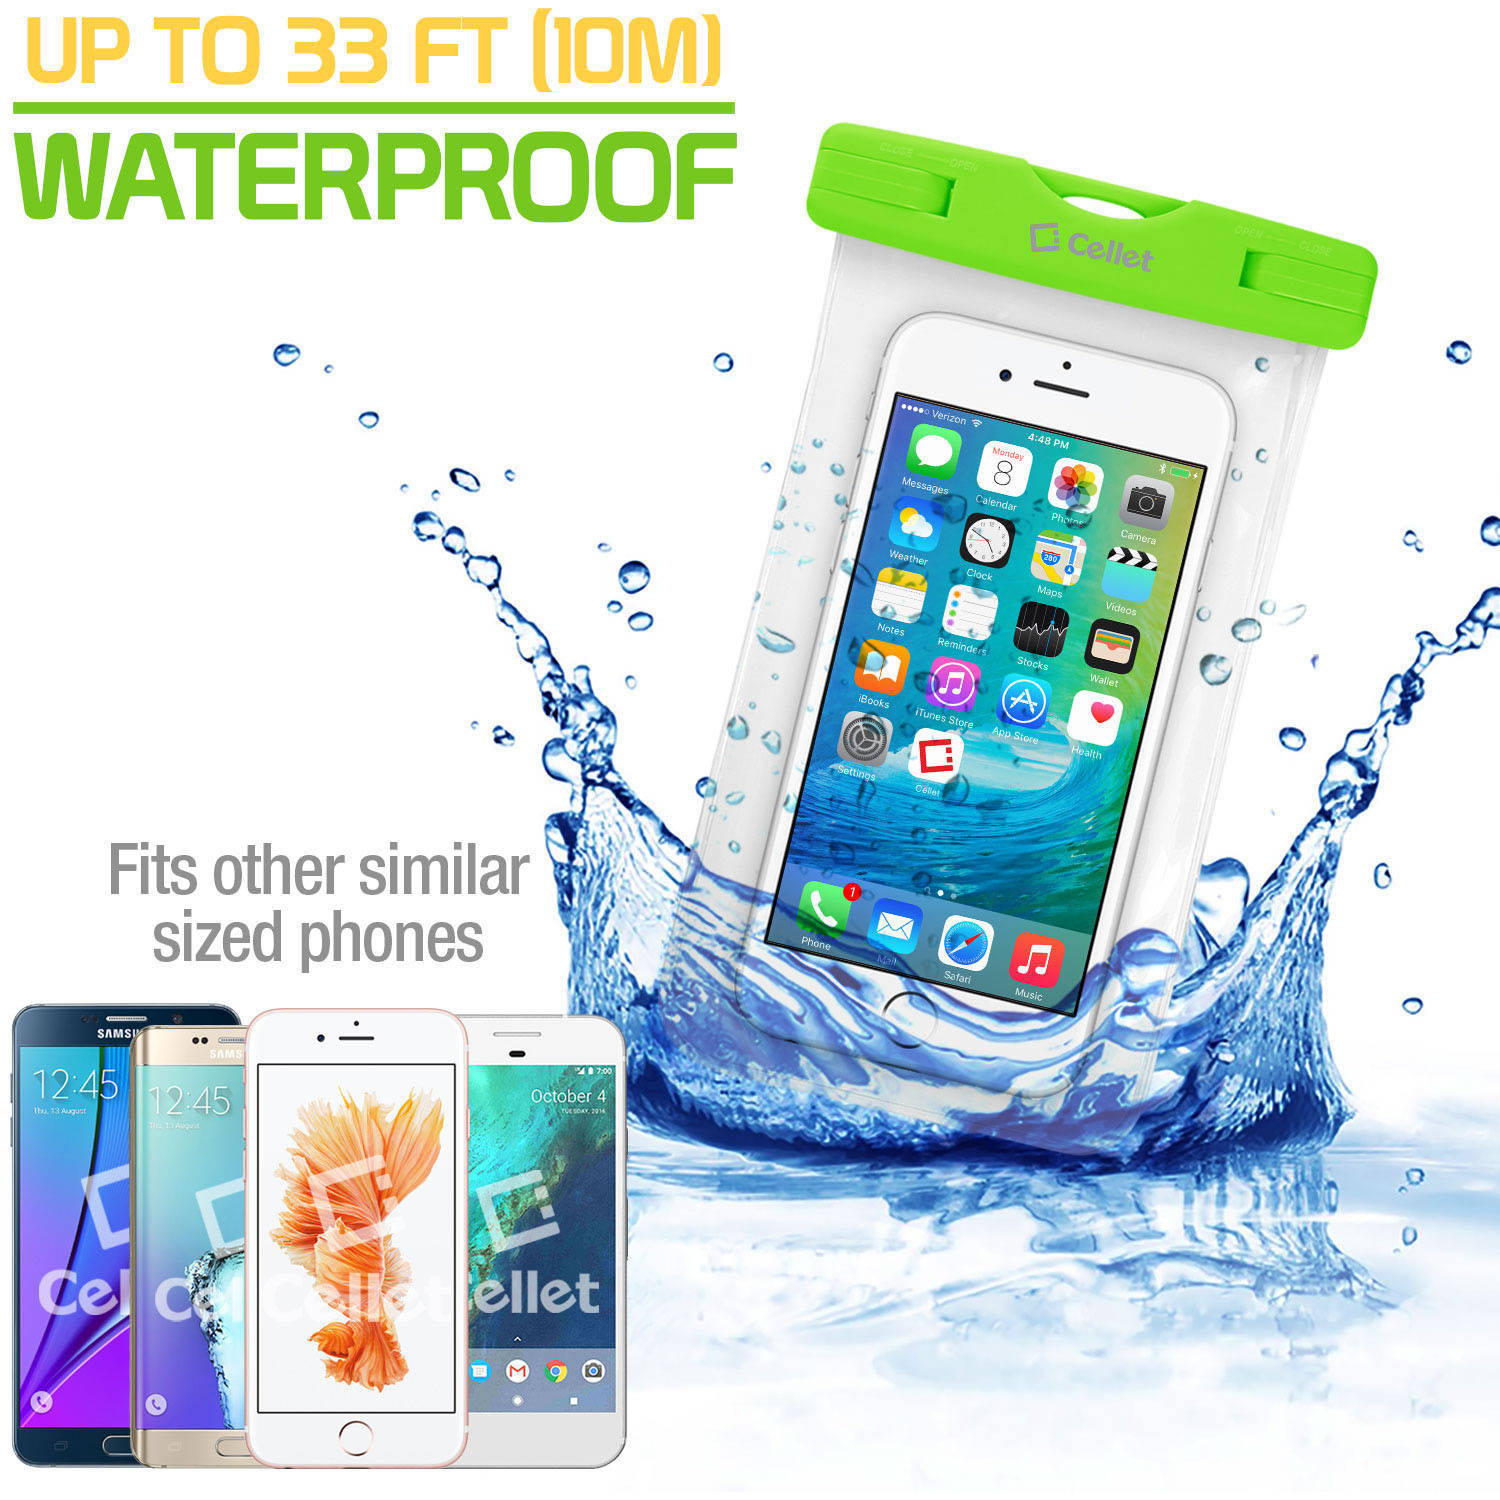 Cellet Universal IPX8 Waterproof Case for Apple iPhone 7 Plus, 6S Plus, Samsung Galaxy S7 edge, Large Smartphones, Digital Cameras, MP3 Players and More, Green